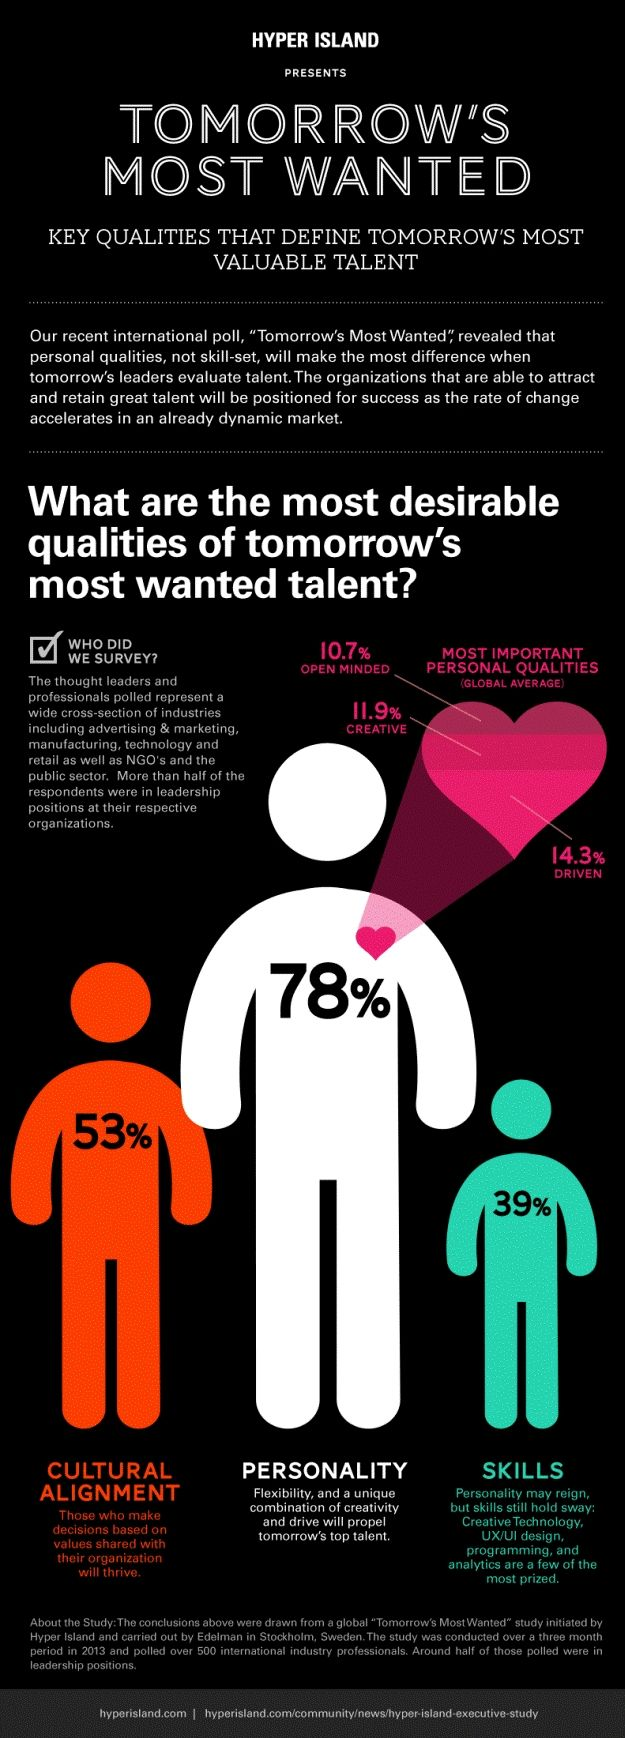 Personality Trumps Skill in Search for Talent - full article here: http://www.hyperisland.com/community/news/hyper-island-executive-study/